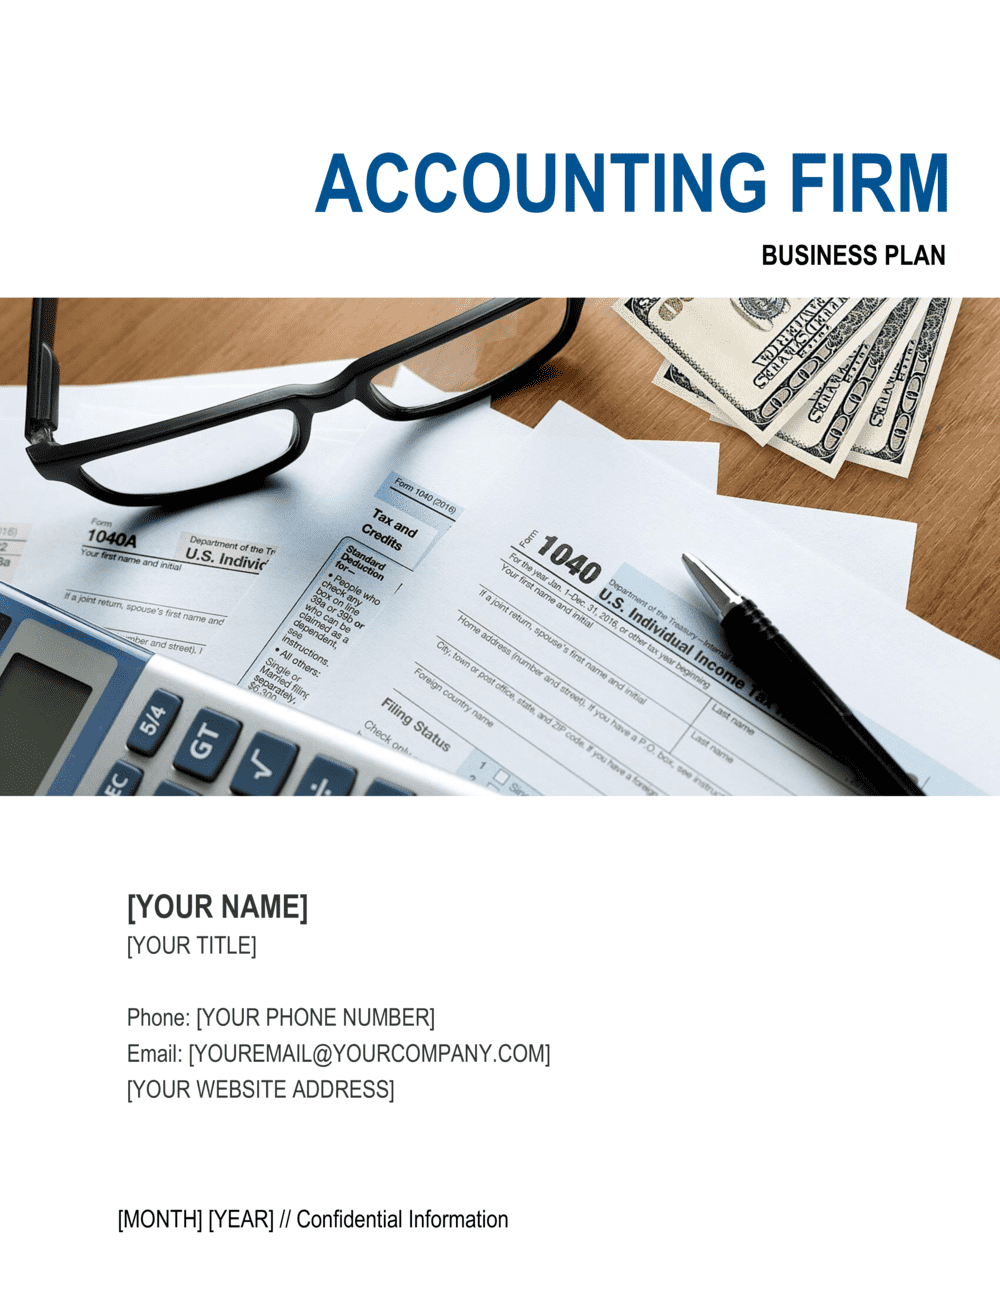 Business-in-a-Box's Accounting Firm Business Plan Template